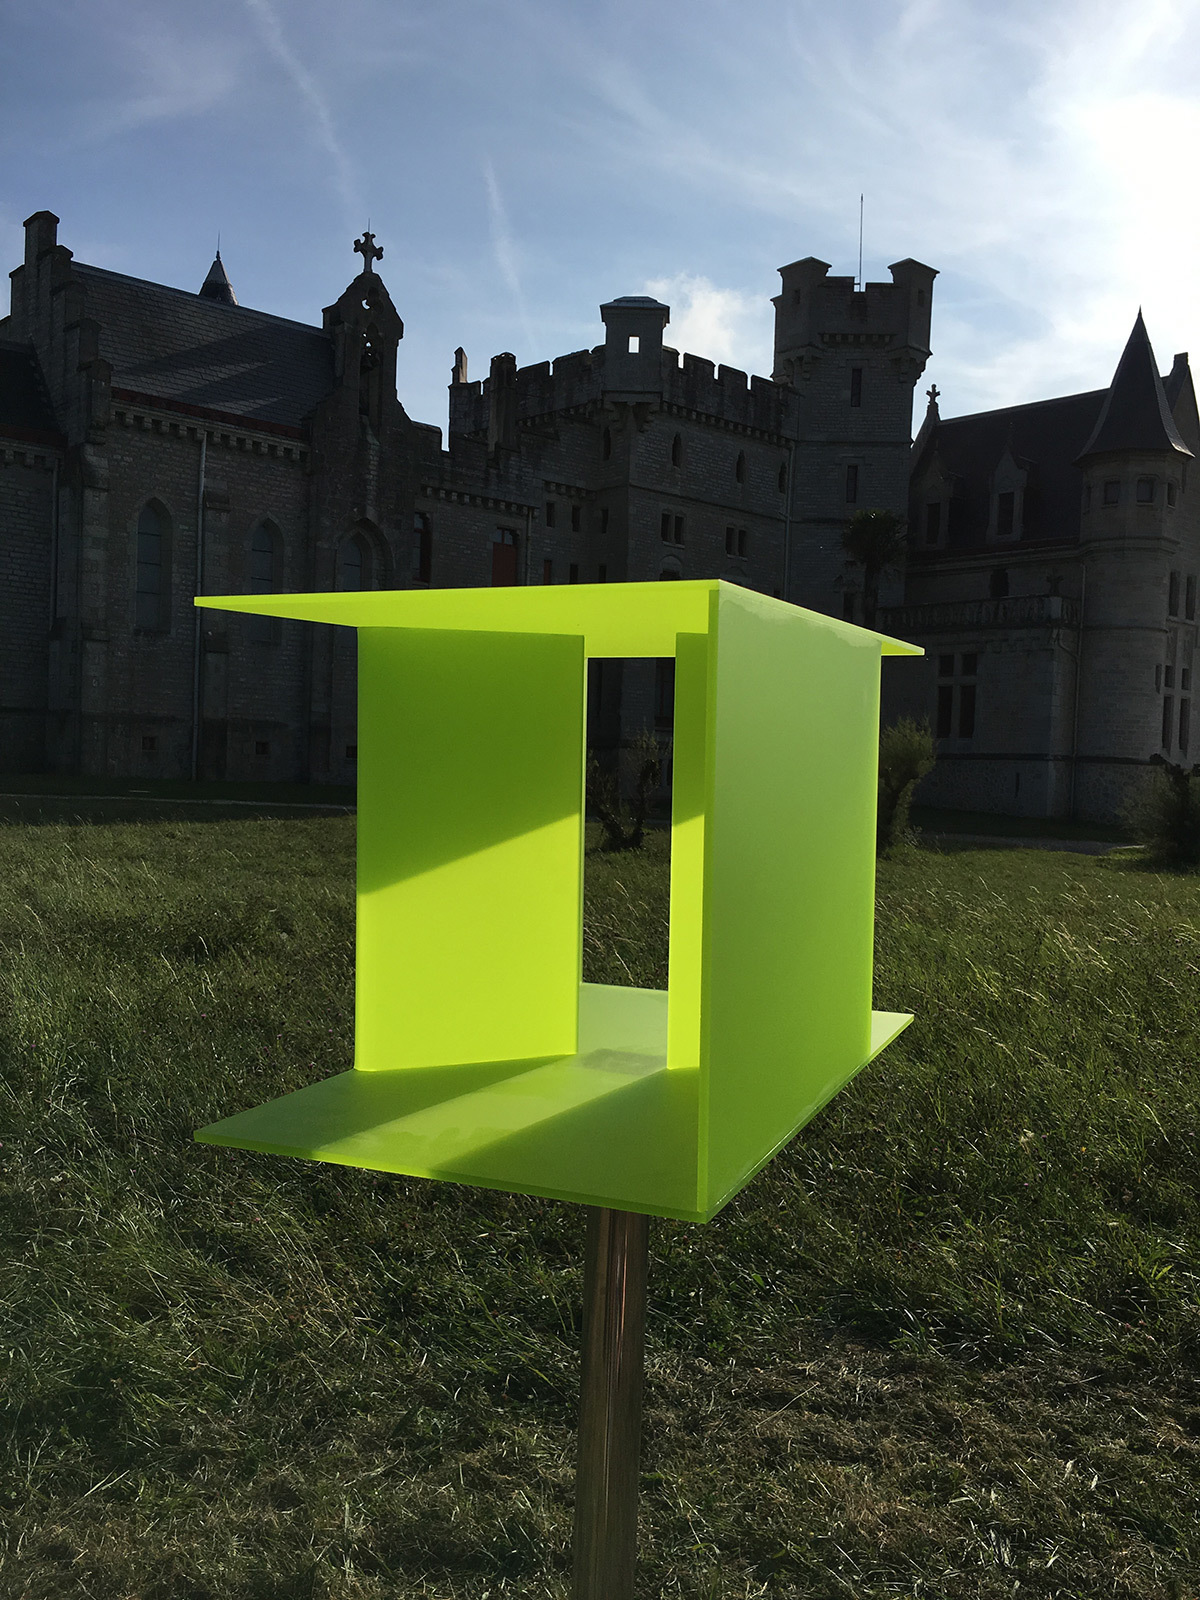 Re-Garder, de Juan Aizpitarte - Château-Observatoire Abbadia, Hendaye, France - Perceptions 3, explorations sensibles 2016 - Photo : Juan Aizpitarte